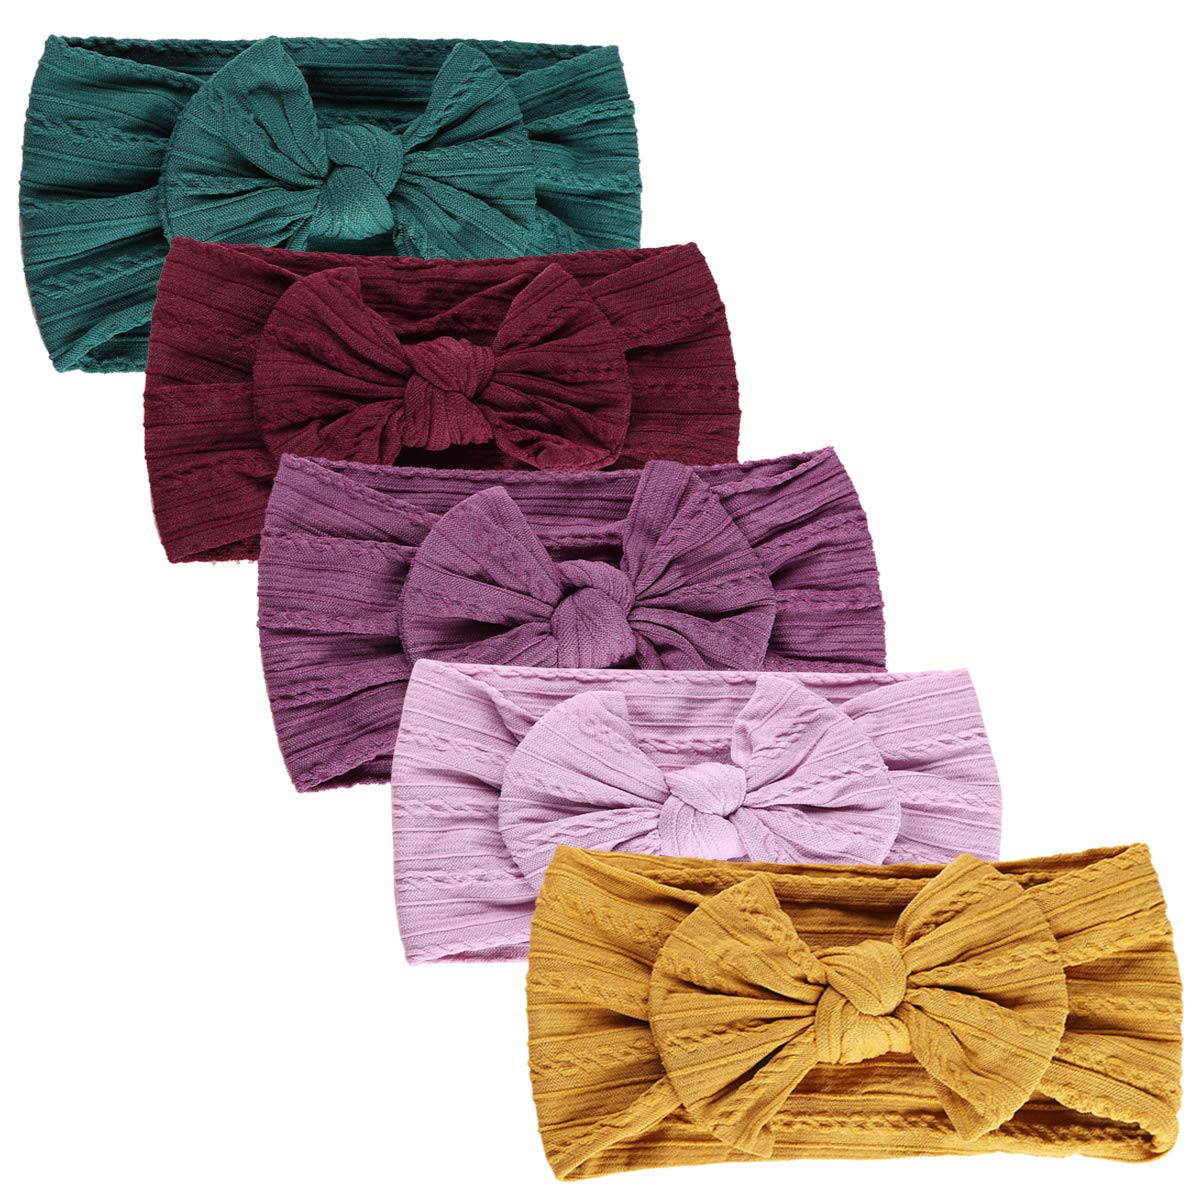 One size Children Baby Girl Headbands and Bows Classic Knot Nylon Headwrap Super Soft Stretchy Nylon Hair bands for Newborn Toddler Multicoloured